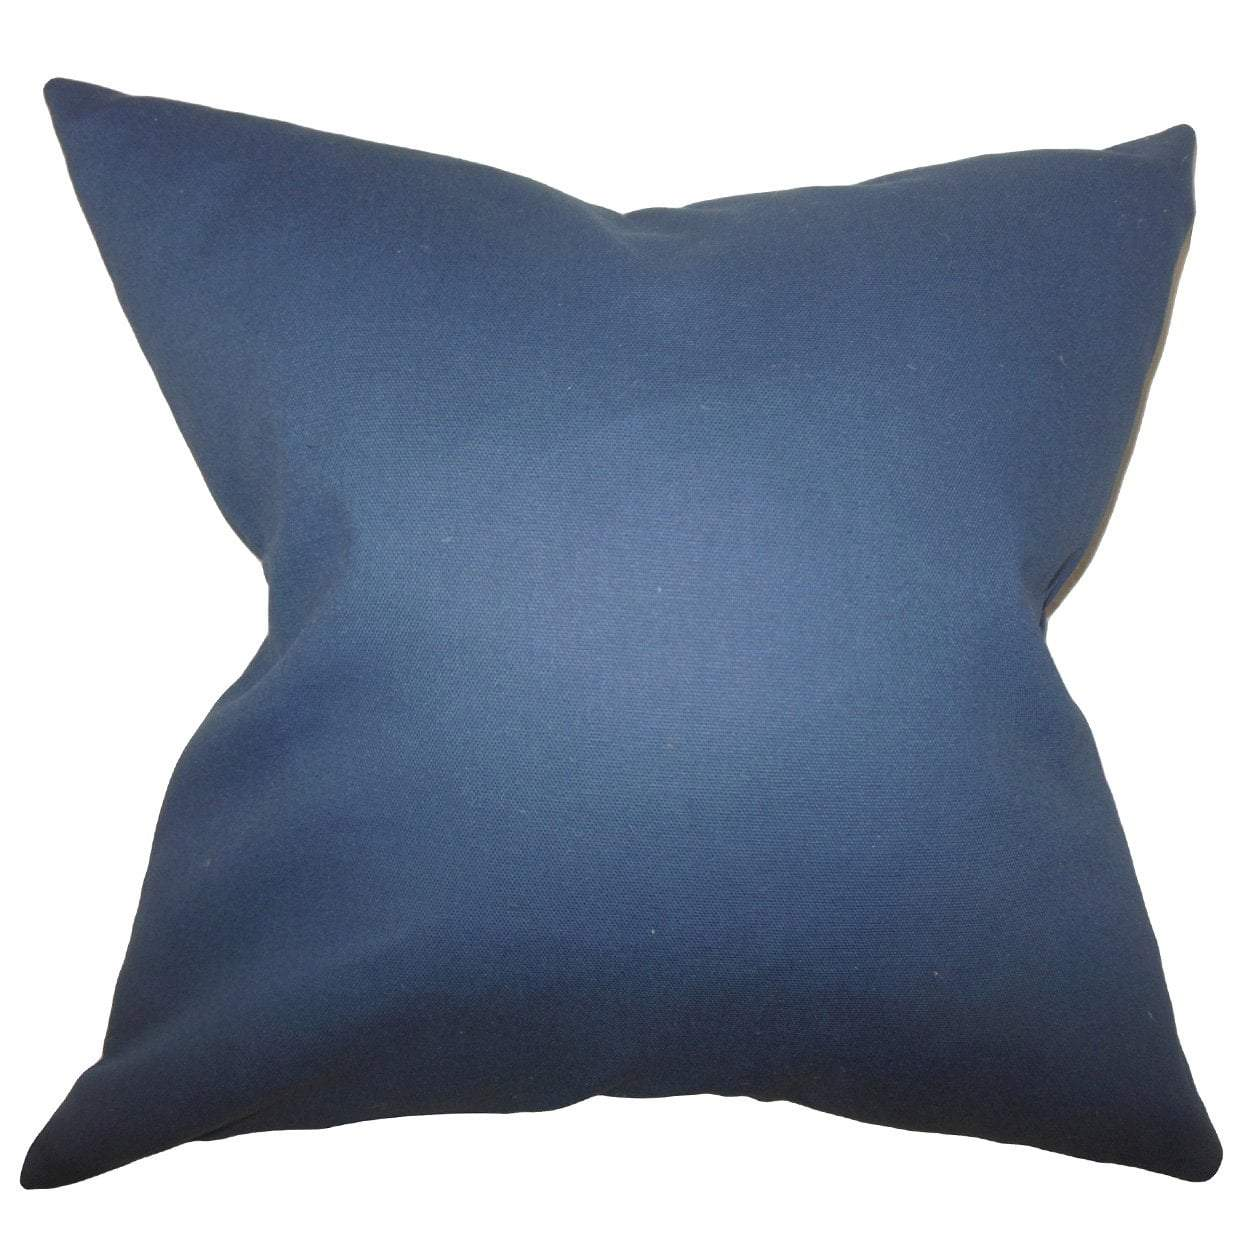 Blue Cotton Solid Contemporary Throw Pillow Cover